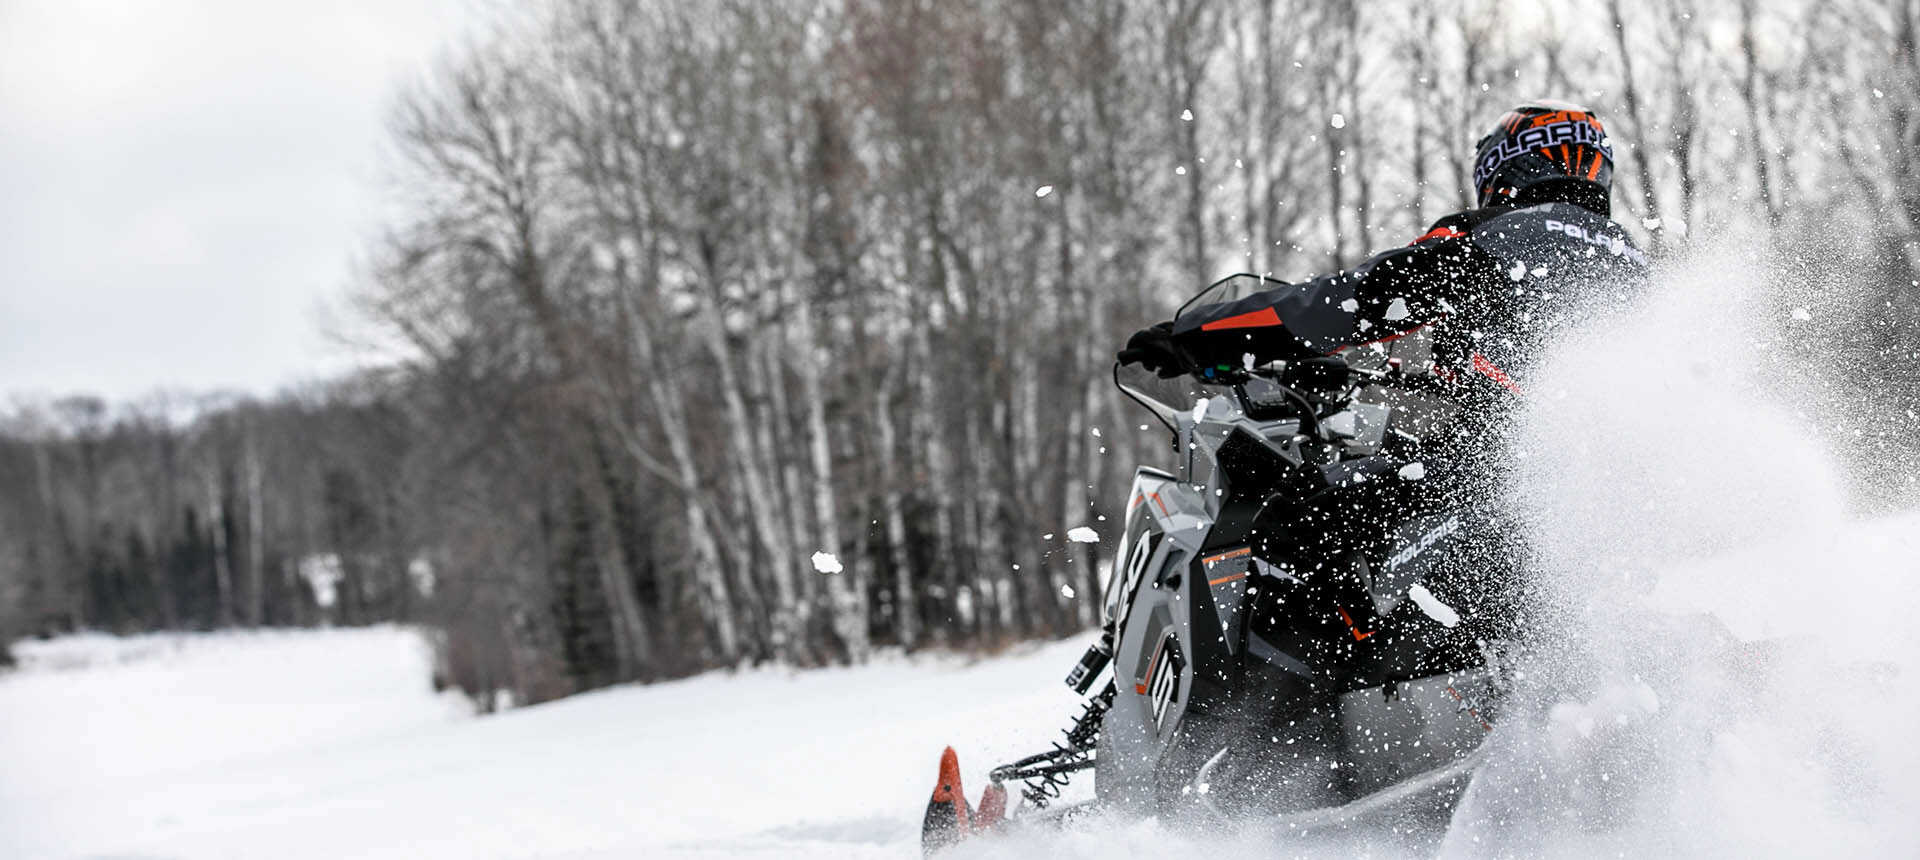 Black Pro S 2020 Polaris Switchback Pro S Snowmobiles Polaris